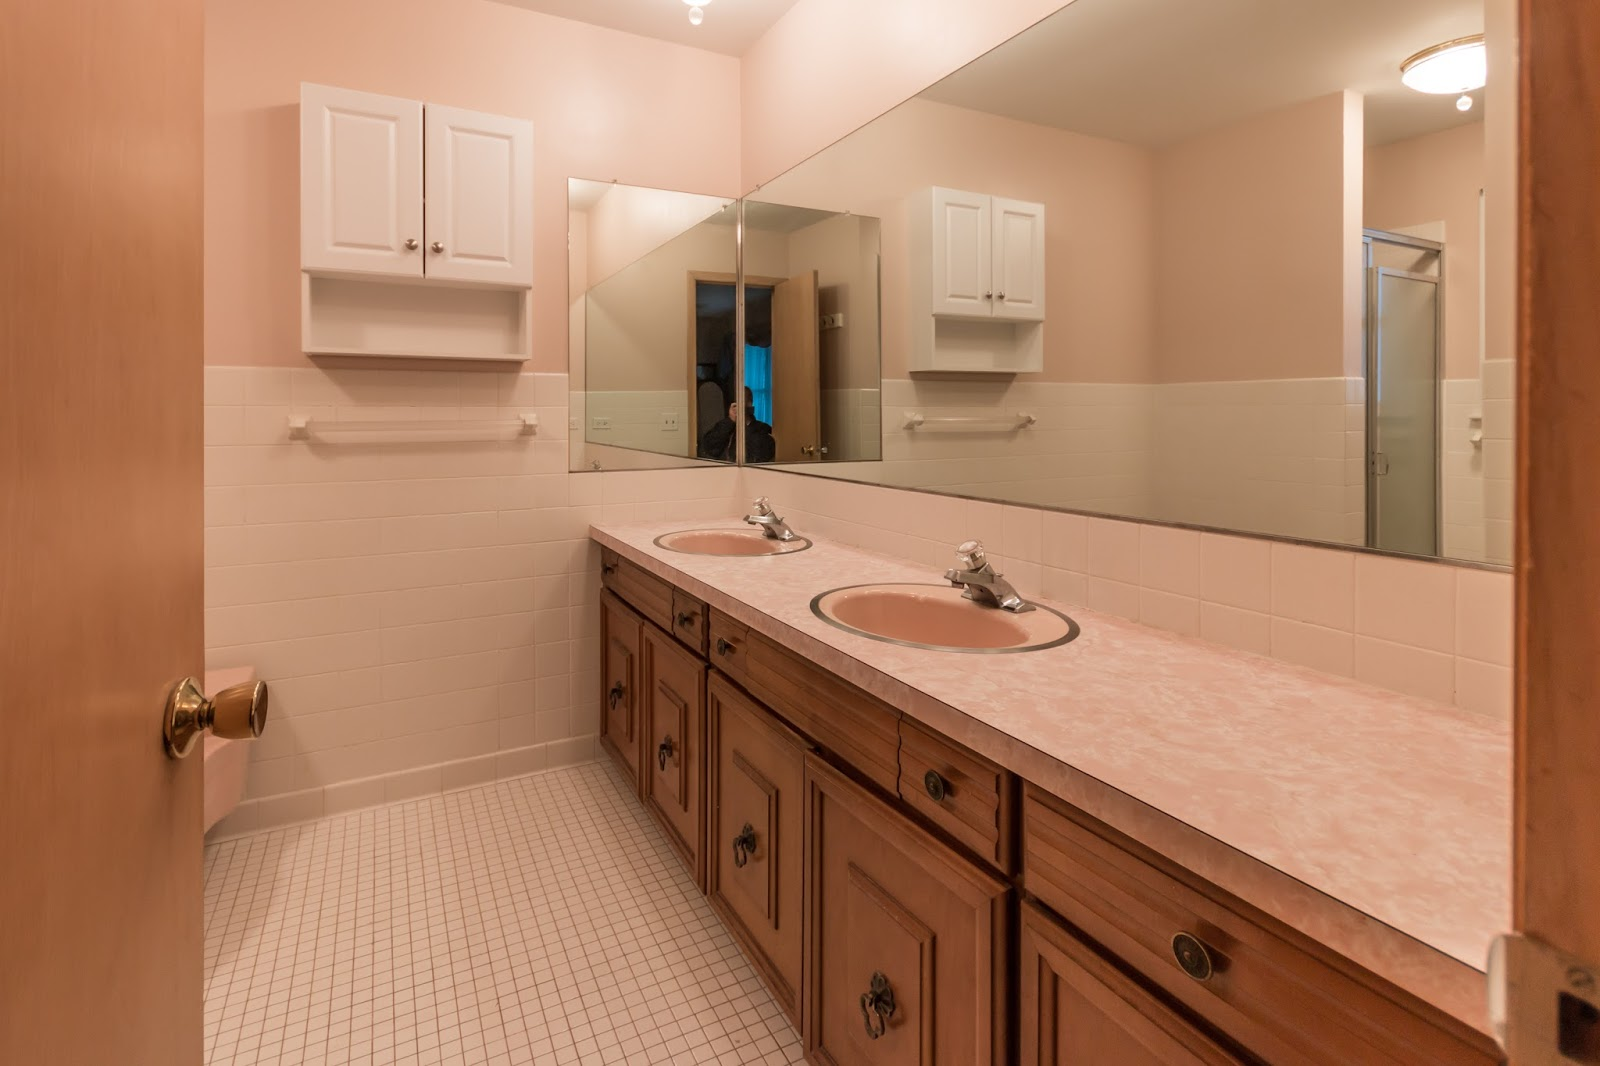 Old Pink 60 S Style Bathroom Gets A Complete Makeover